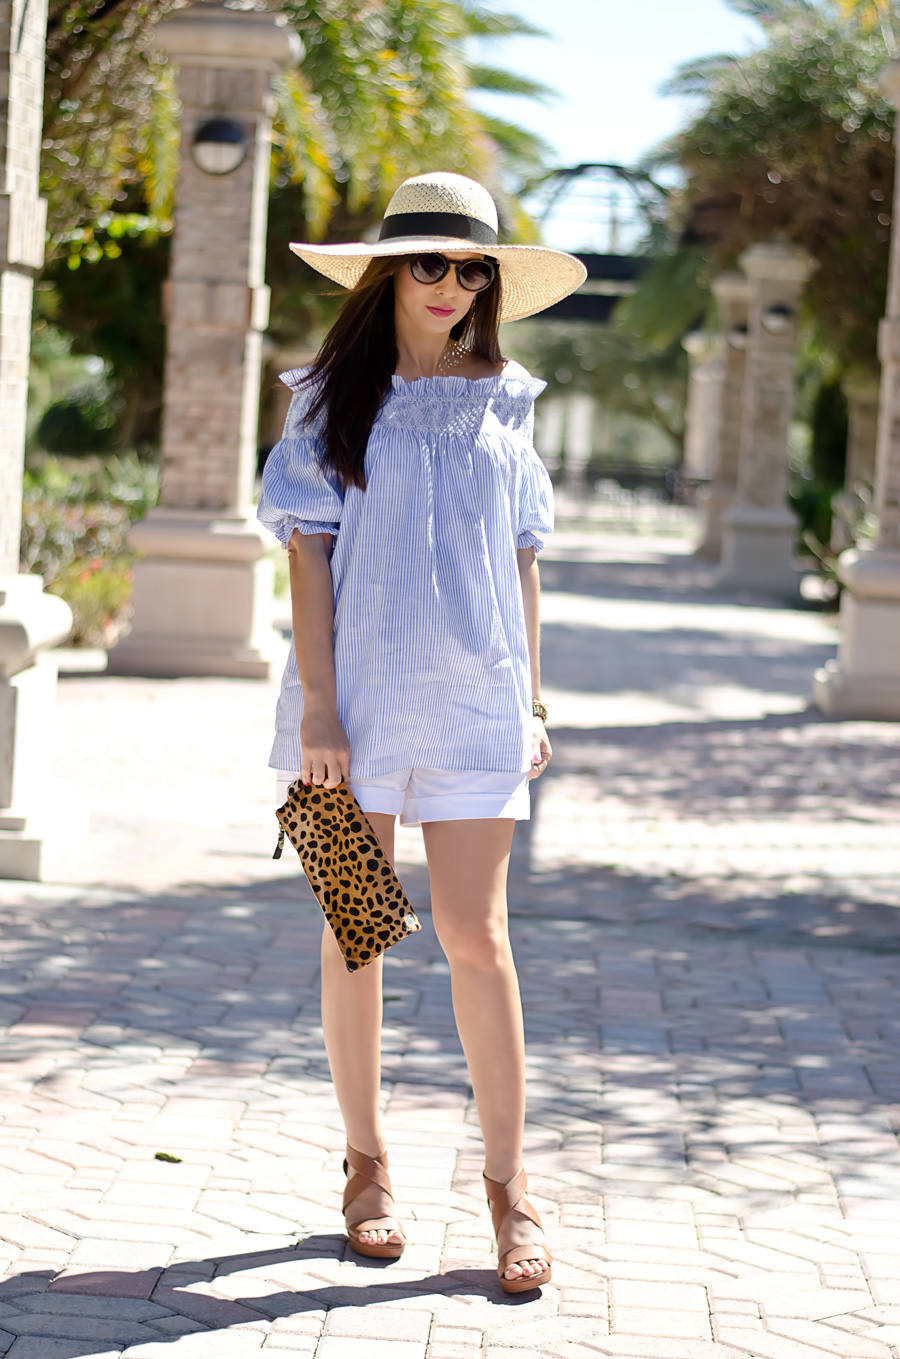 ae6bdc13ad8 spring-summer-maternity-style-chicwish-tunic-with-white-maternity-shorts-2